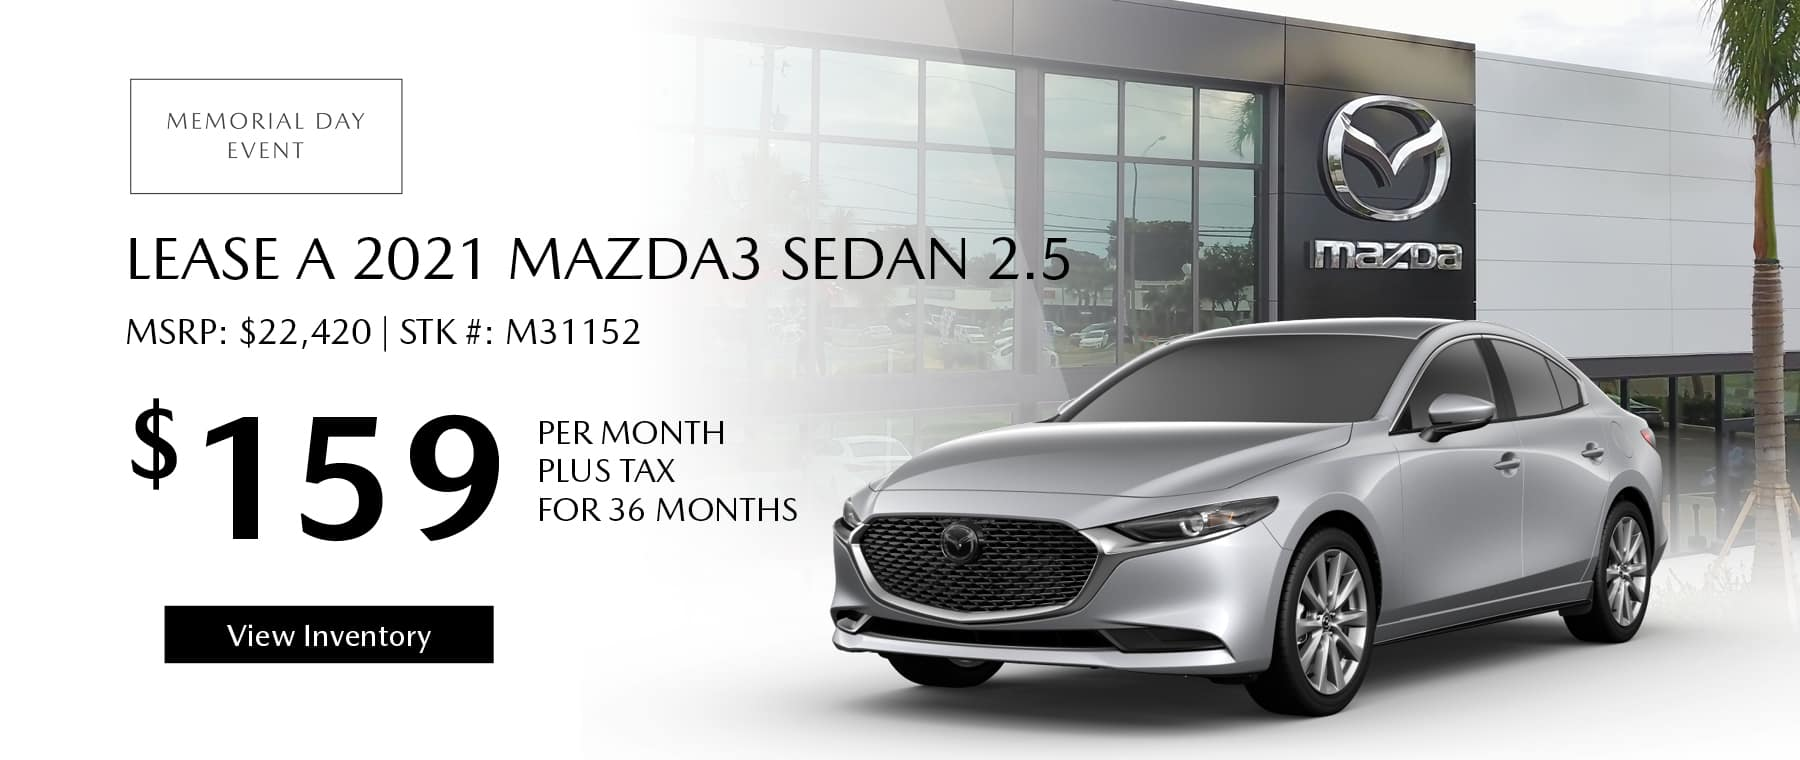 Lease the 2021 Mazda3 Sedan 2.5 for $159 per month, plus tax for 36 months. Click or tap here to view our inventory.